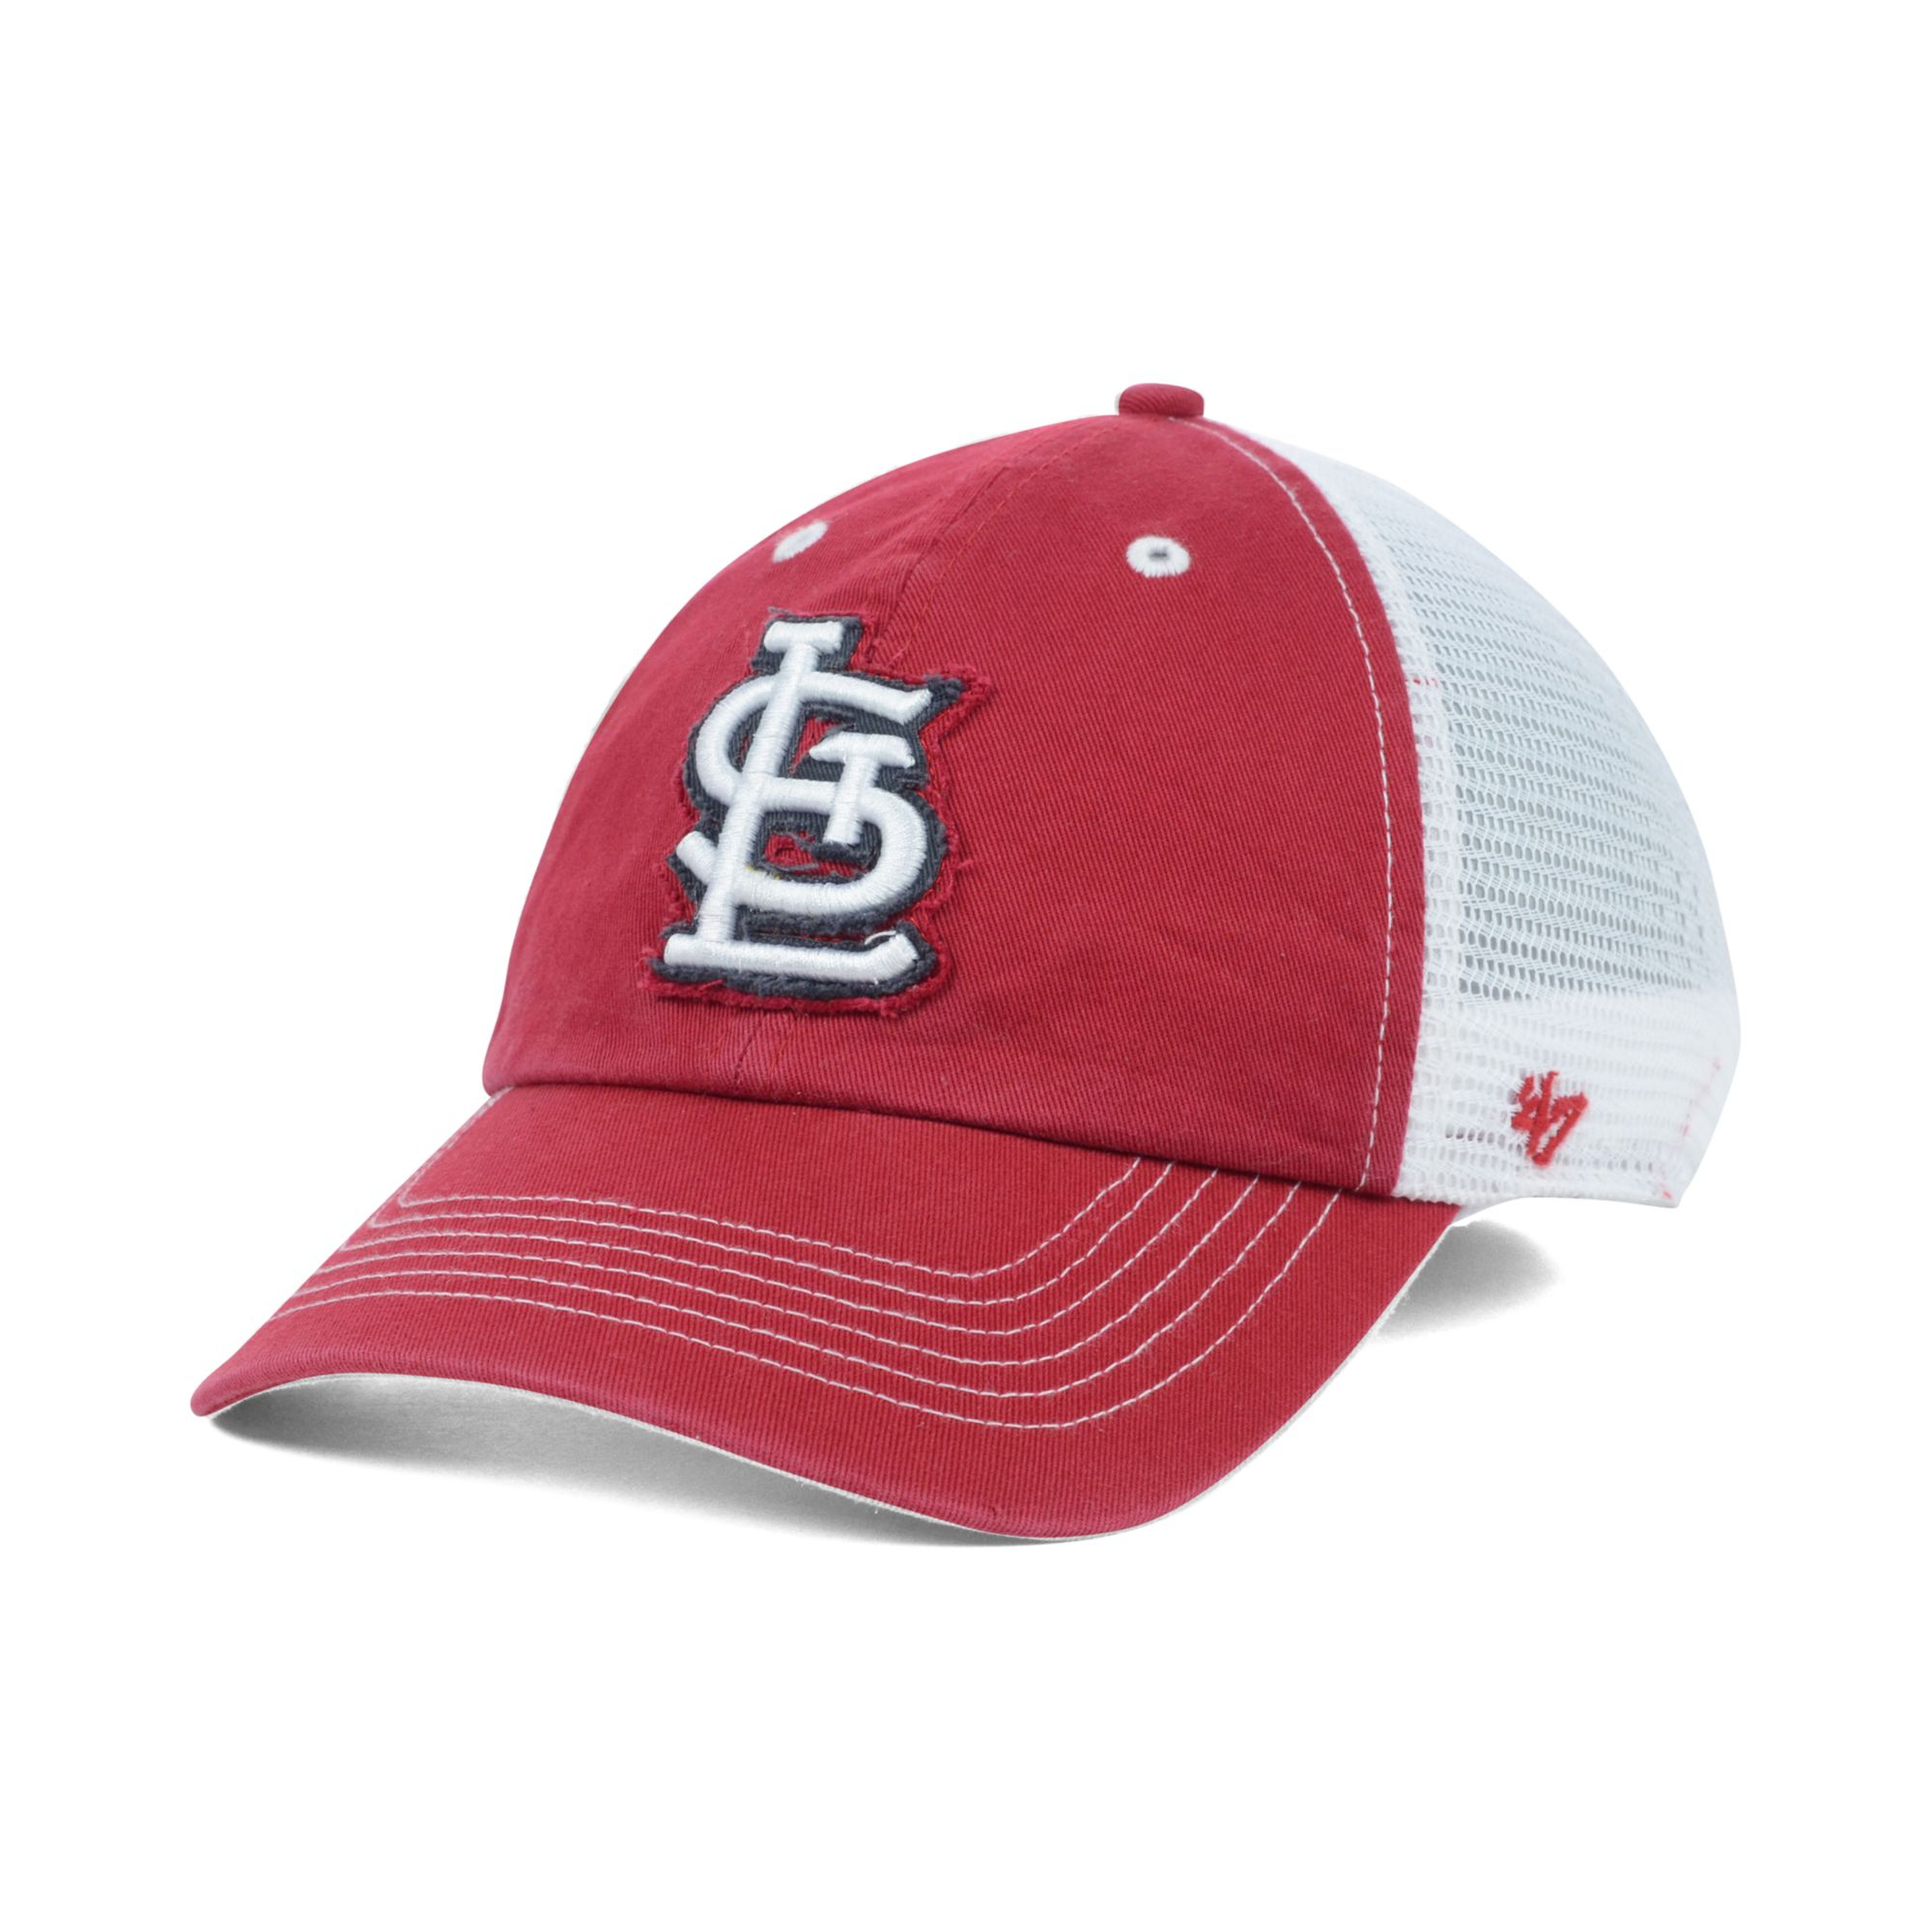 Lyst - 47 Brand St Louis Cardinals Blue Mountain Franchise Cap in ... 3dbf5022b2d